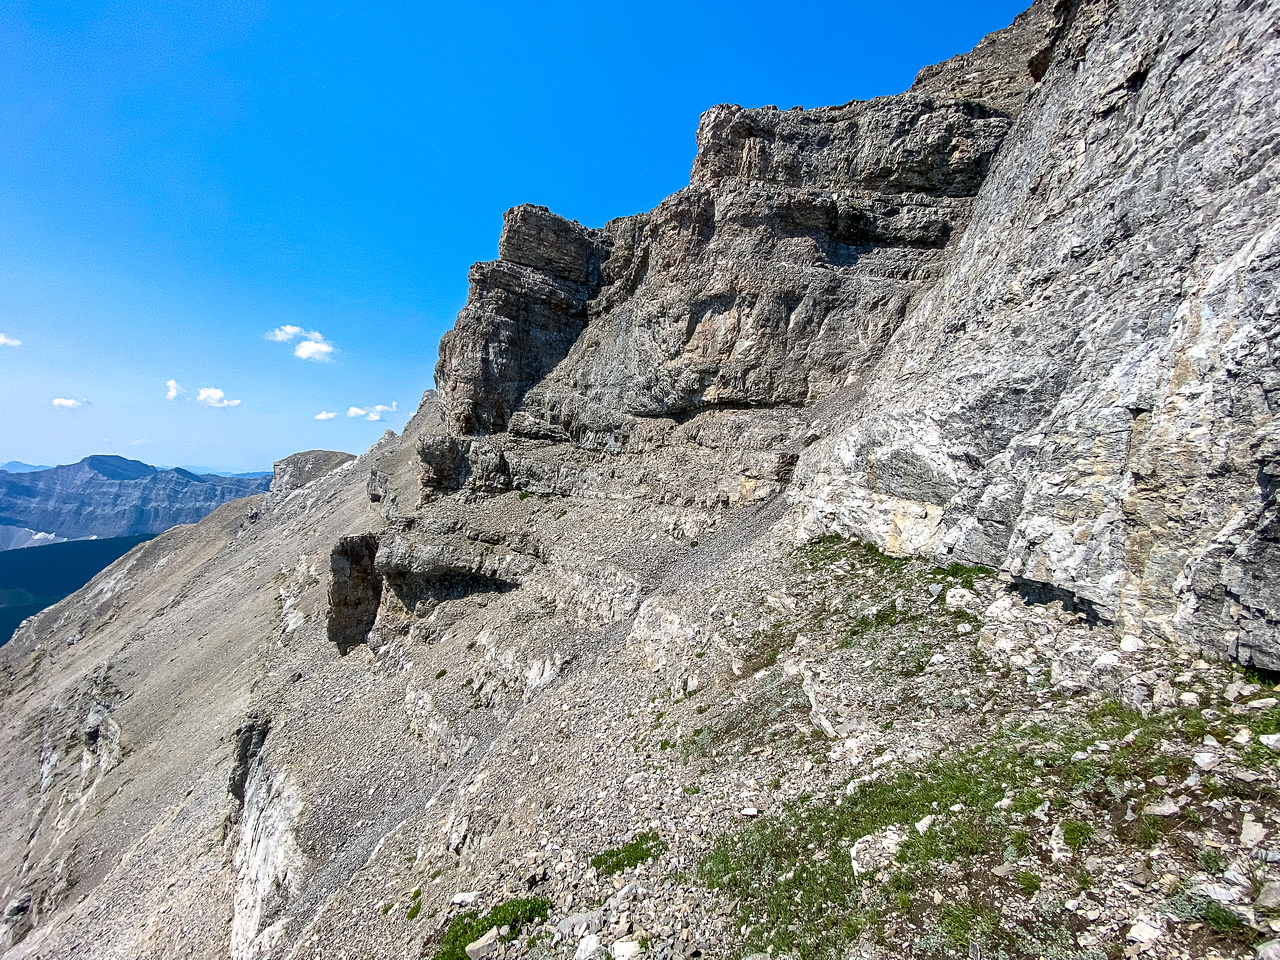 The upper crux at mid photo rising to right.